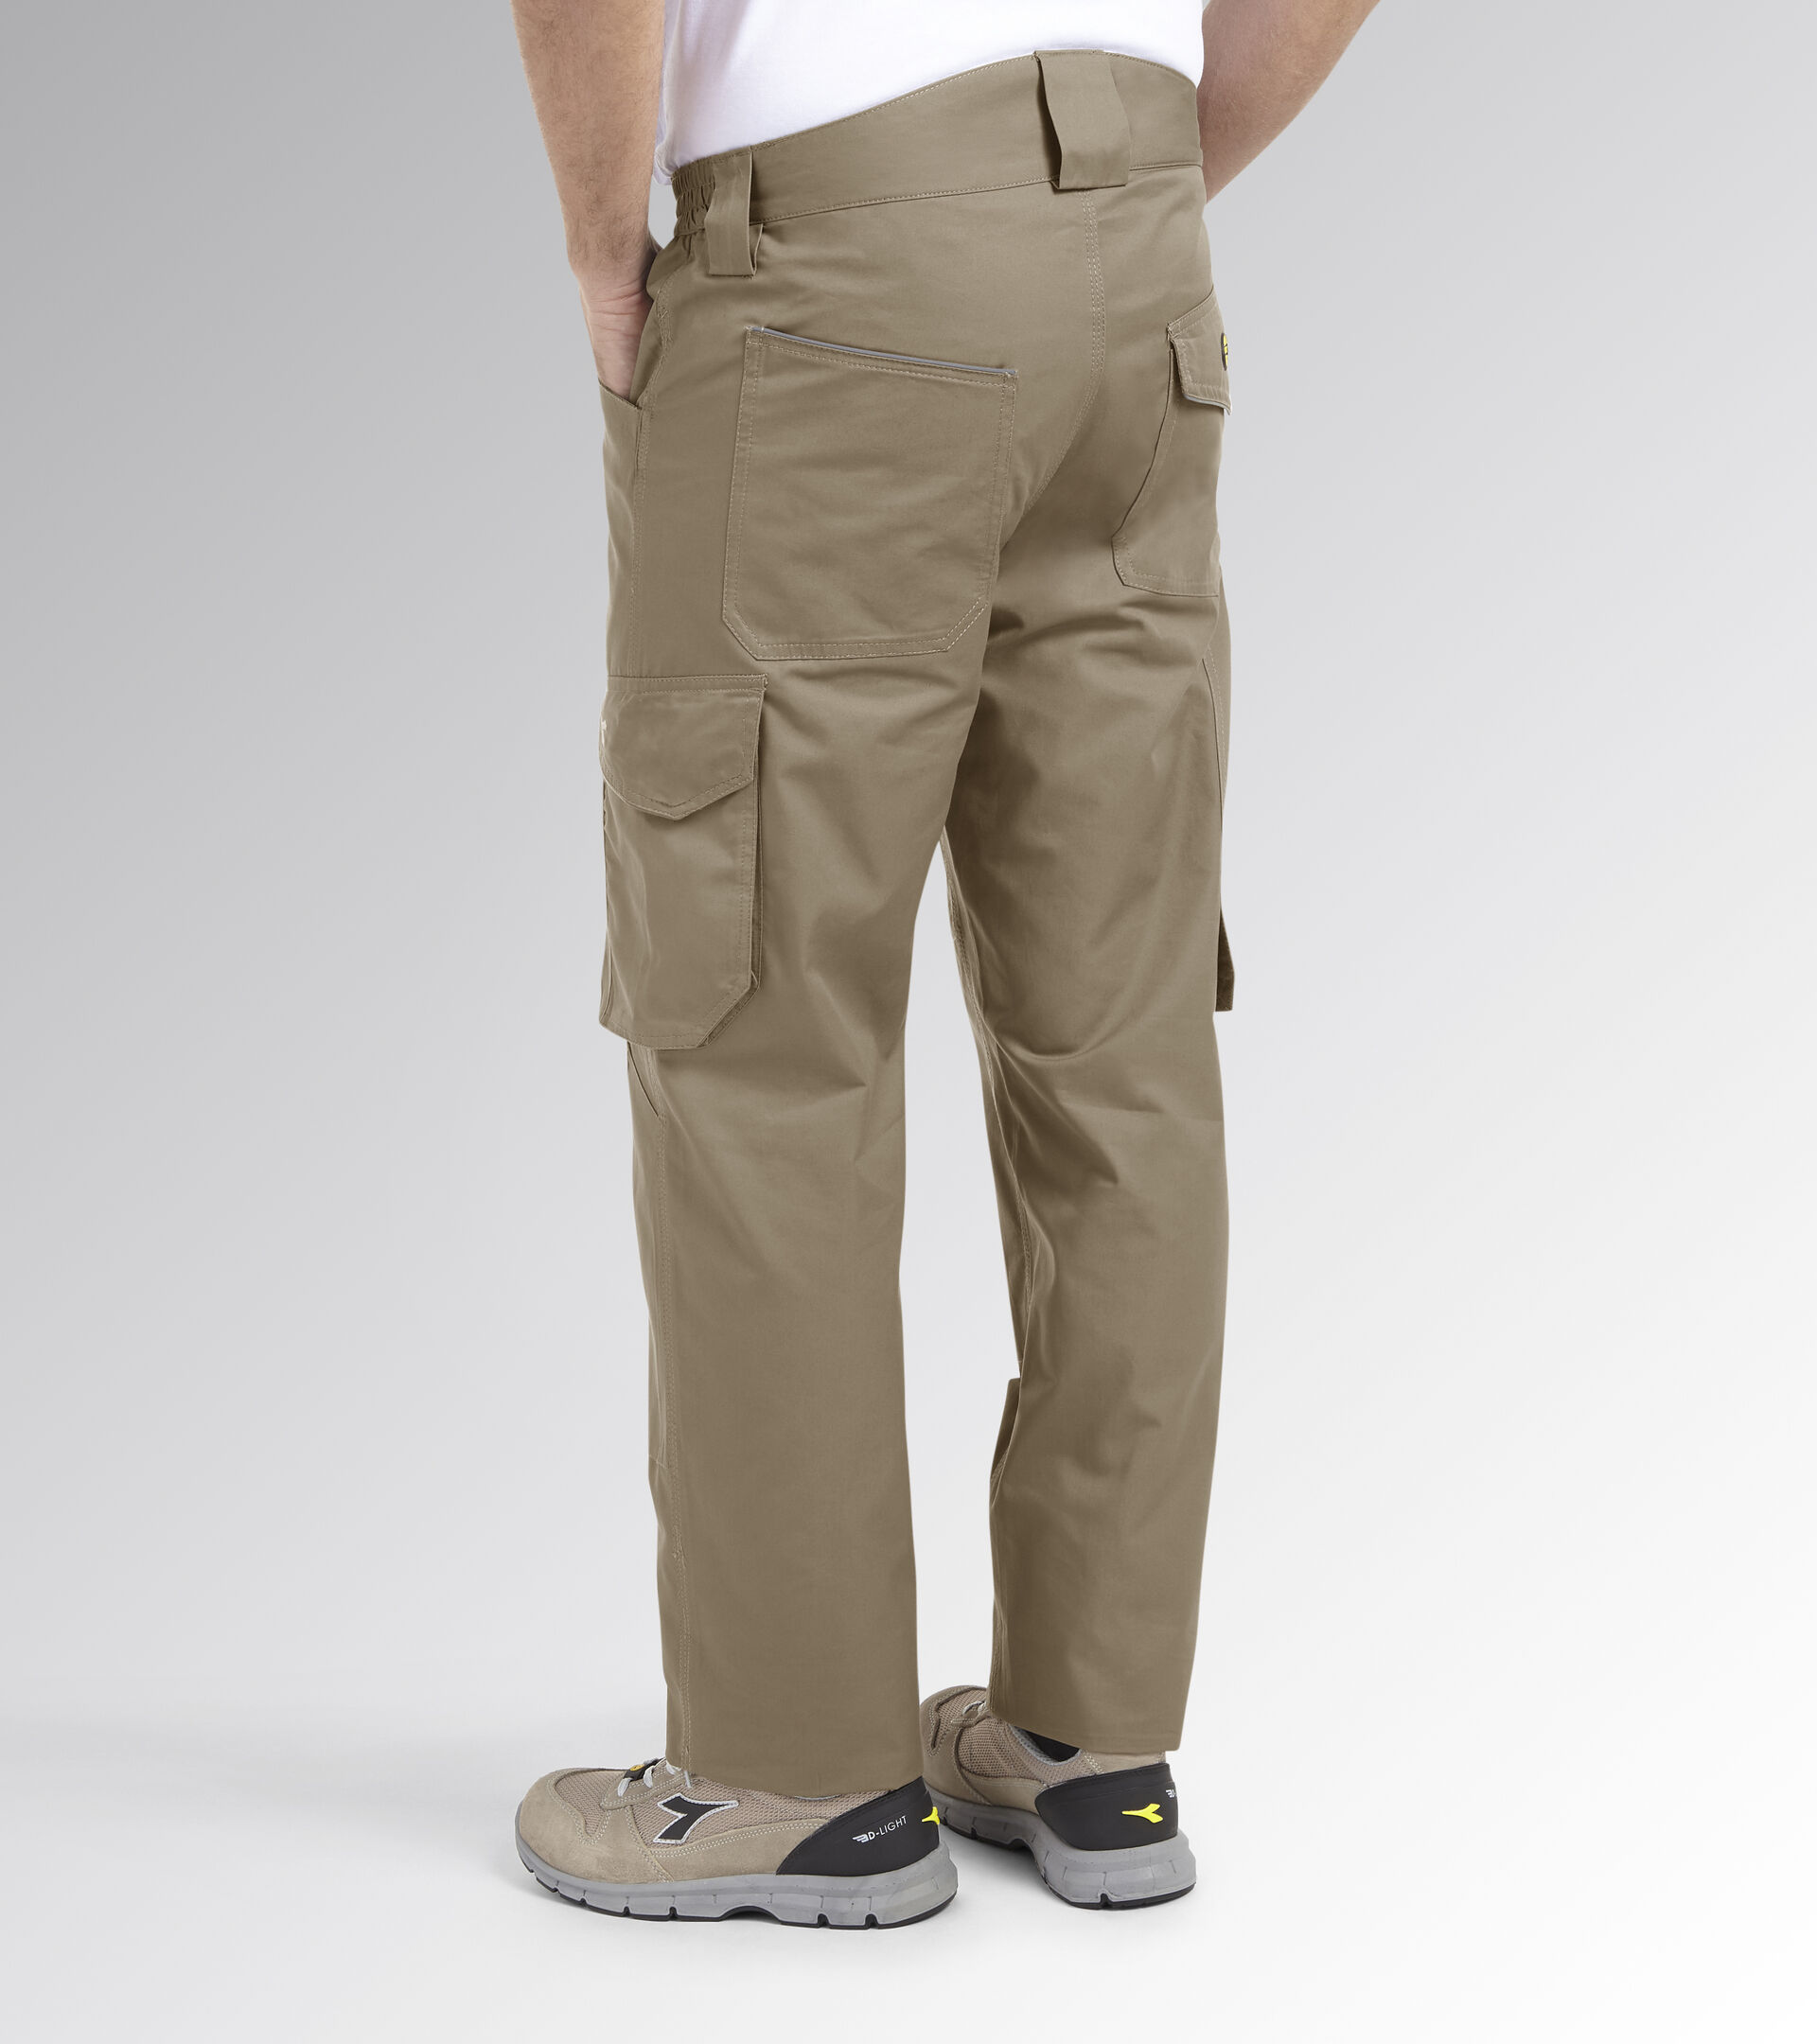 Apparel Utility UOMO PANT ROCK LIGHT PERF COTTON BEIGE NATURAL Utility